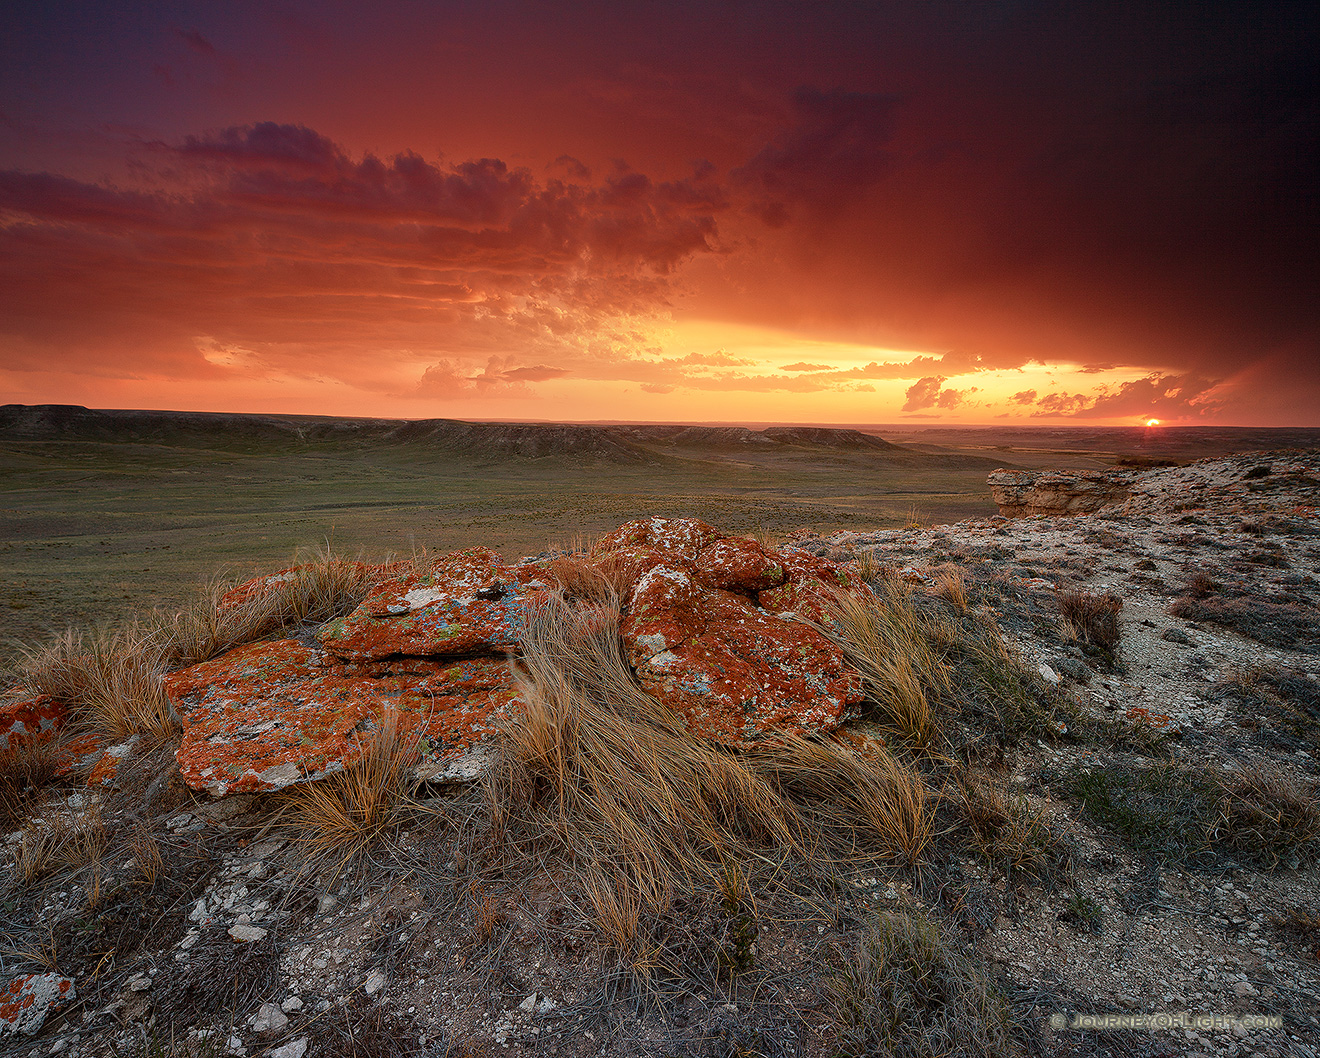 Sunset at Agate Fossil Beds National Monument in western Nebraska after an intense summer storm. - Nebraska Picture